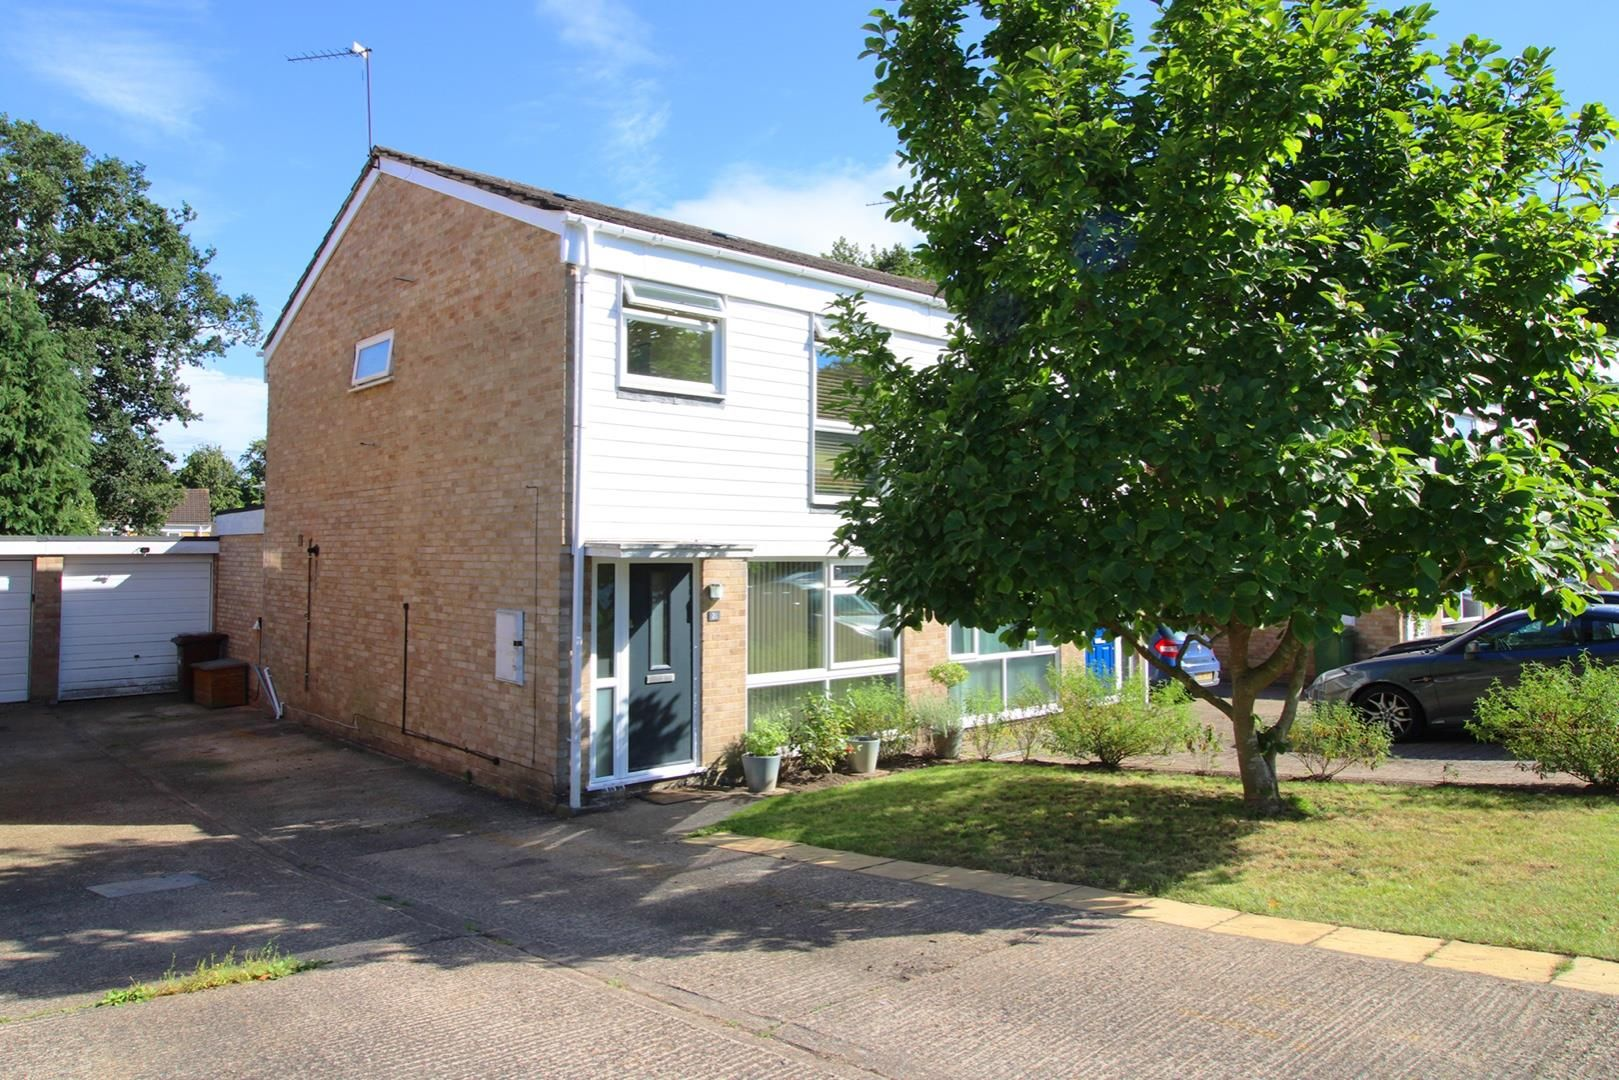 3 bed semi-detached for sale, SL5